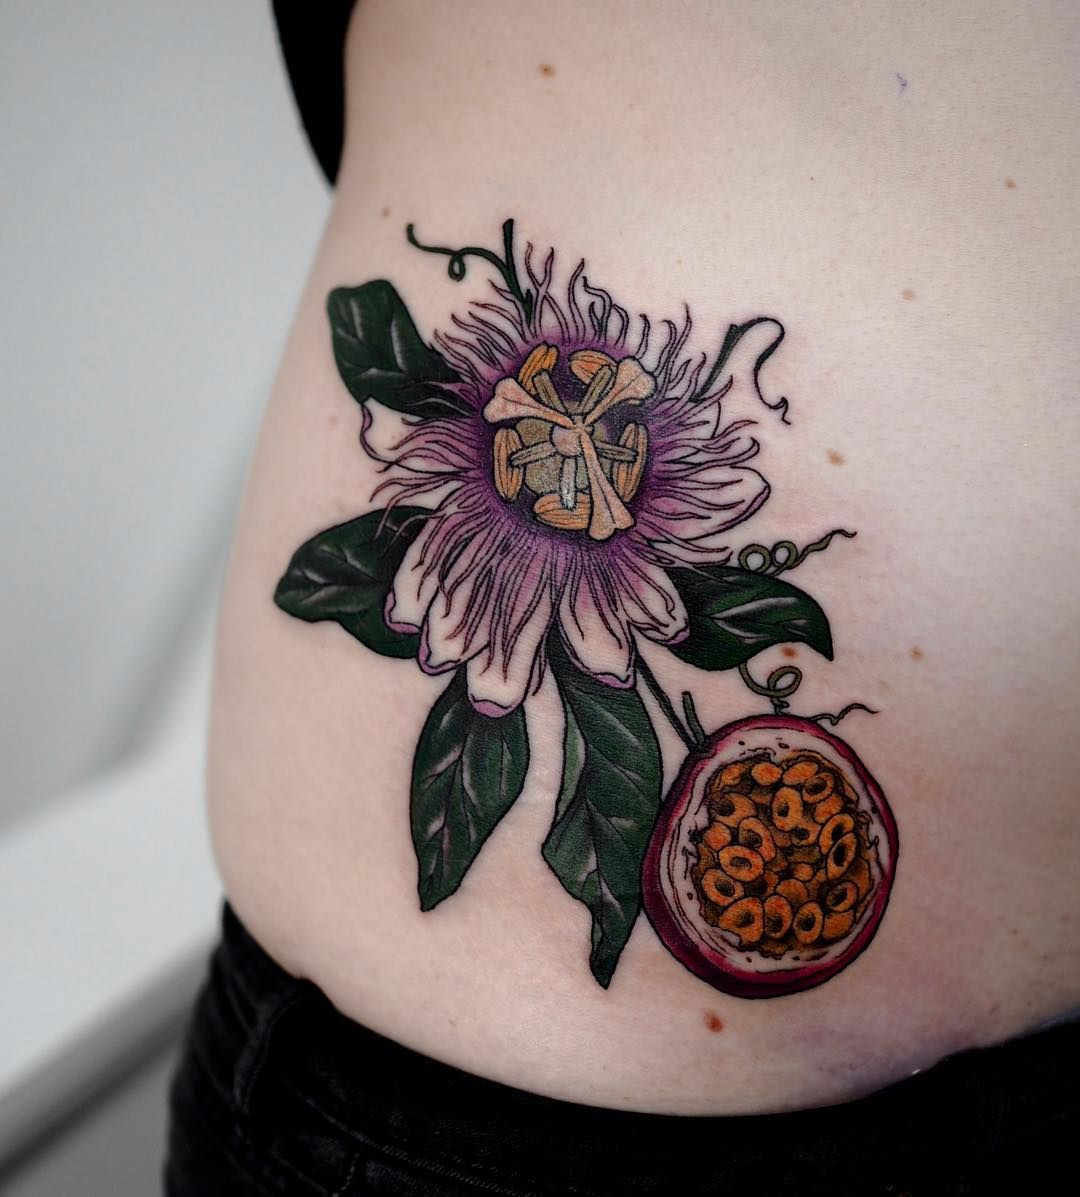 Sophia Baughan Passionflower Tattoo Body Art Tattoos Tattoos Fruit Tattoo